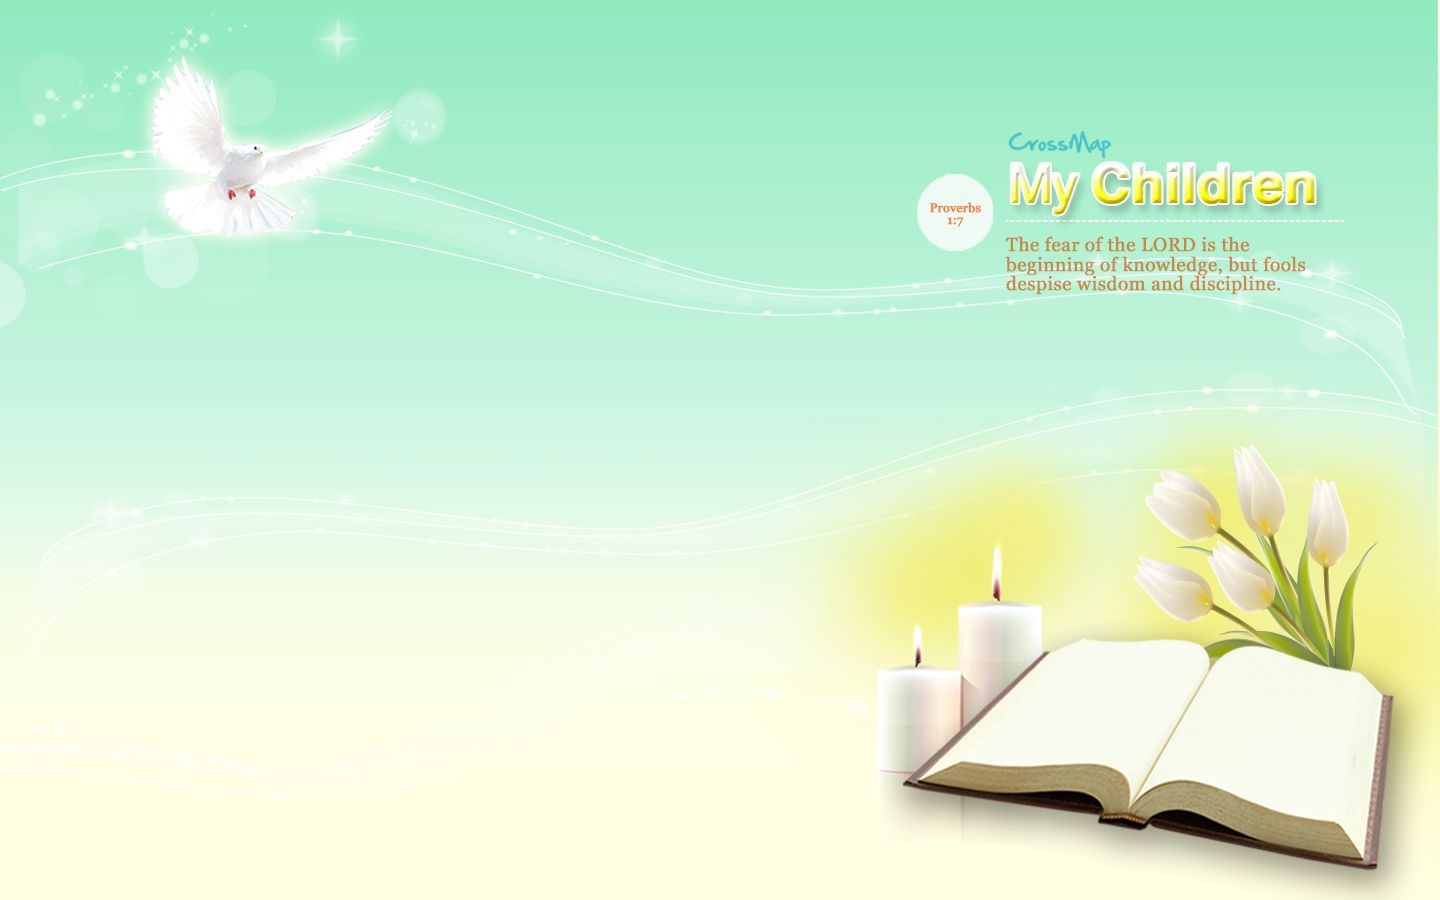 The Begining of Knowledge Christian Illustrations Crossmap 1440x900